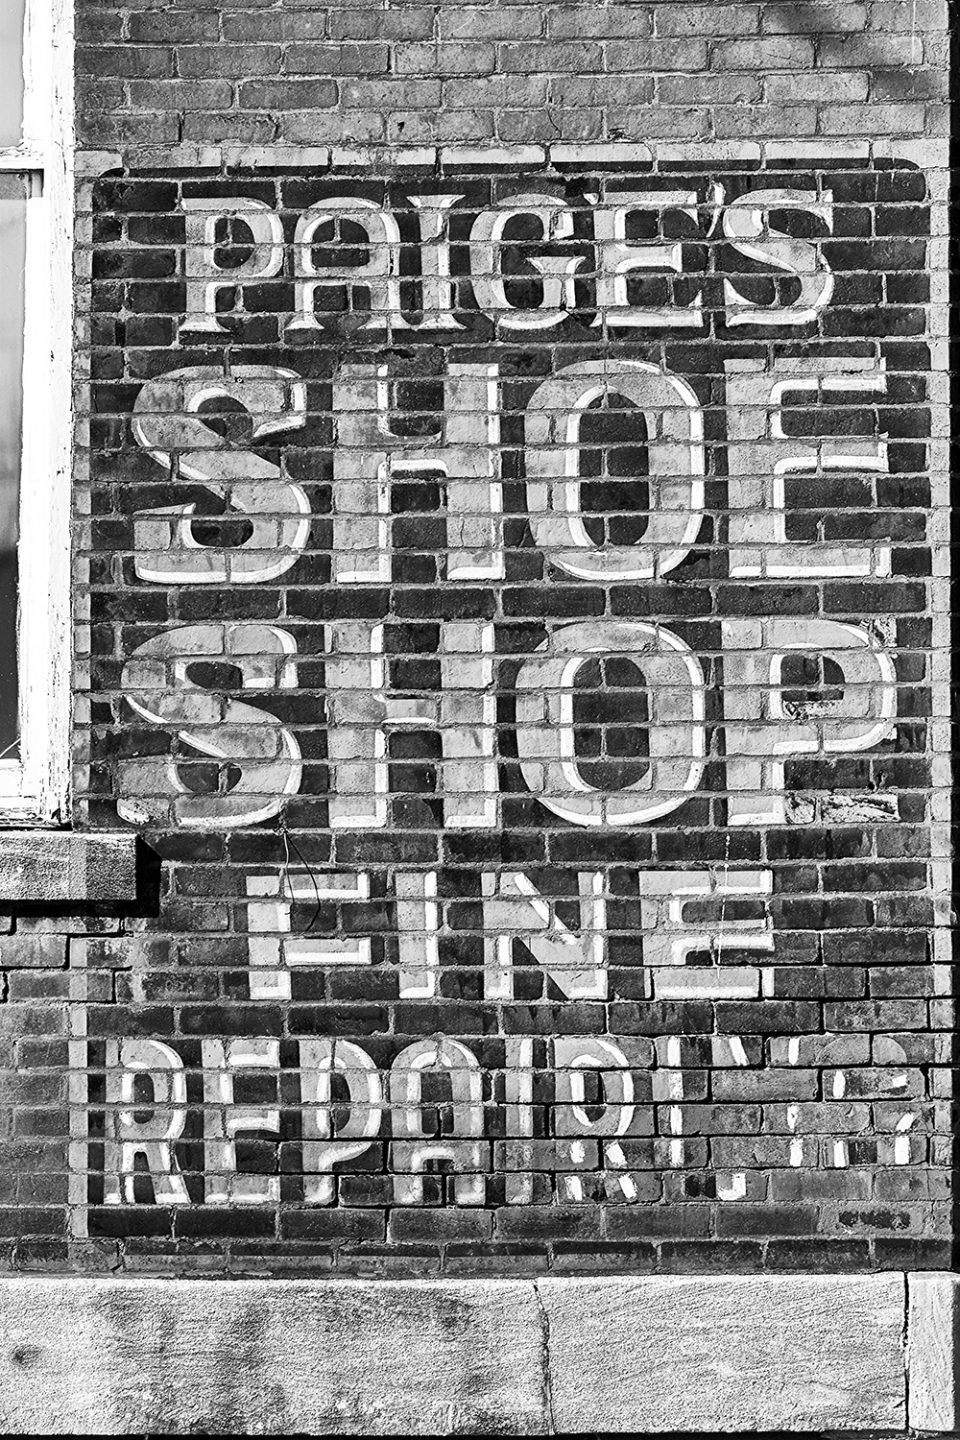 Fading sign for a long-gone shoe shop. Black and white photograph by Keith Dotson.